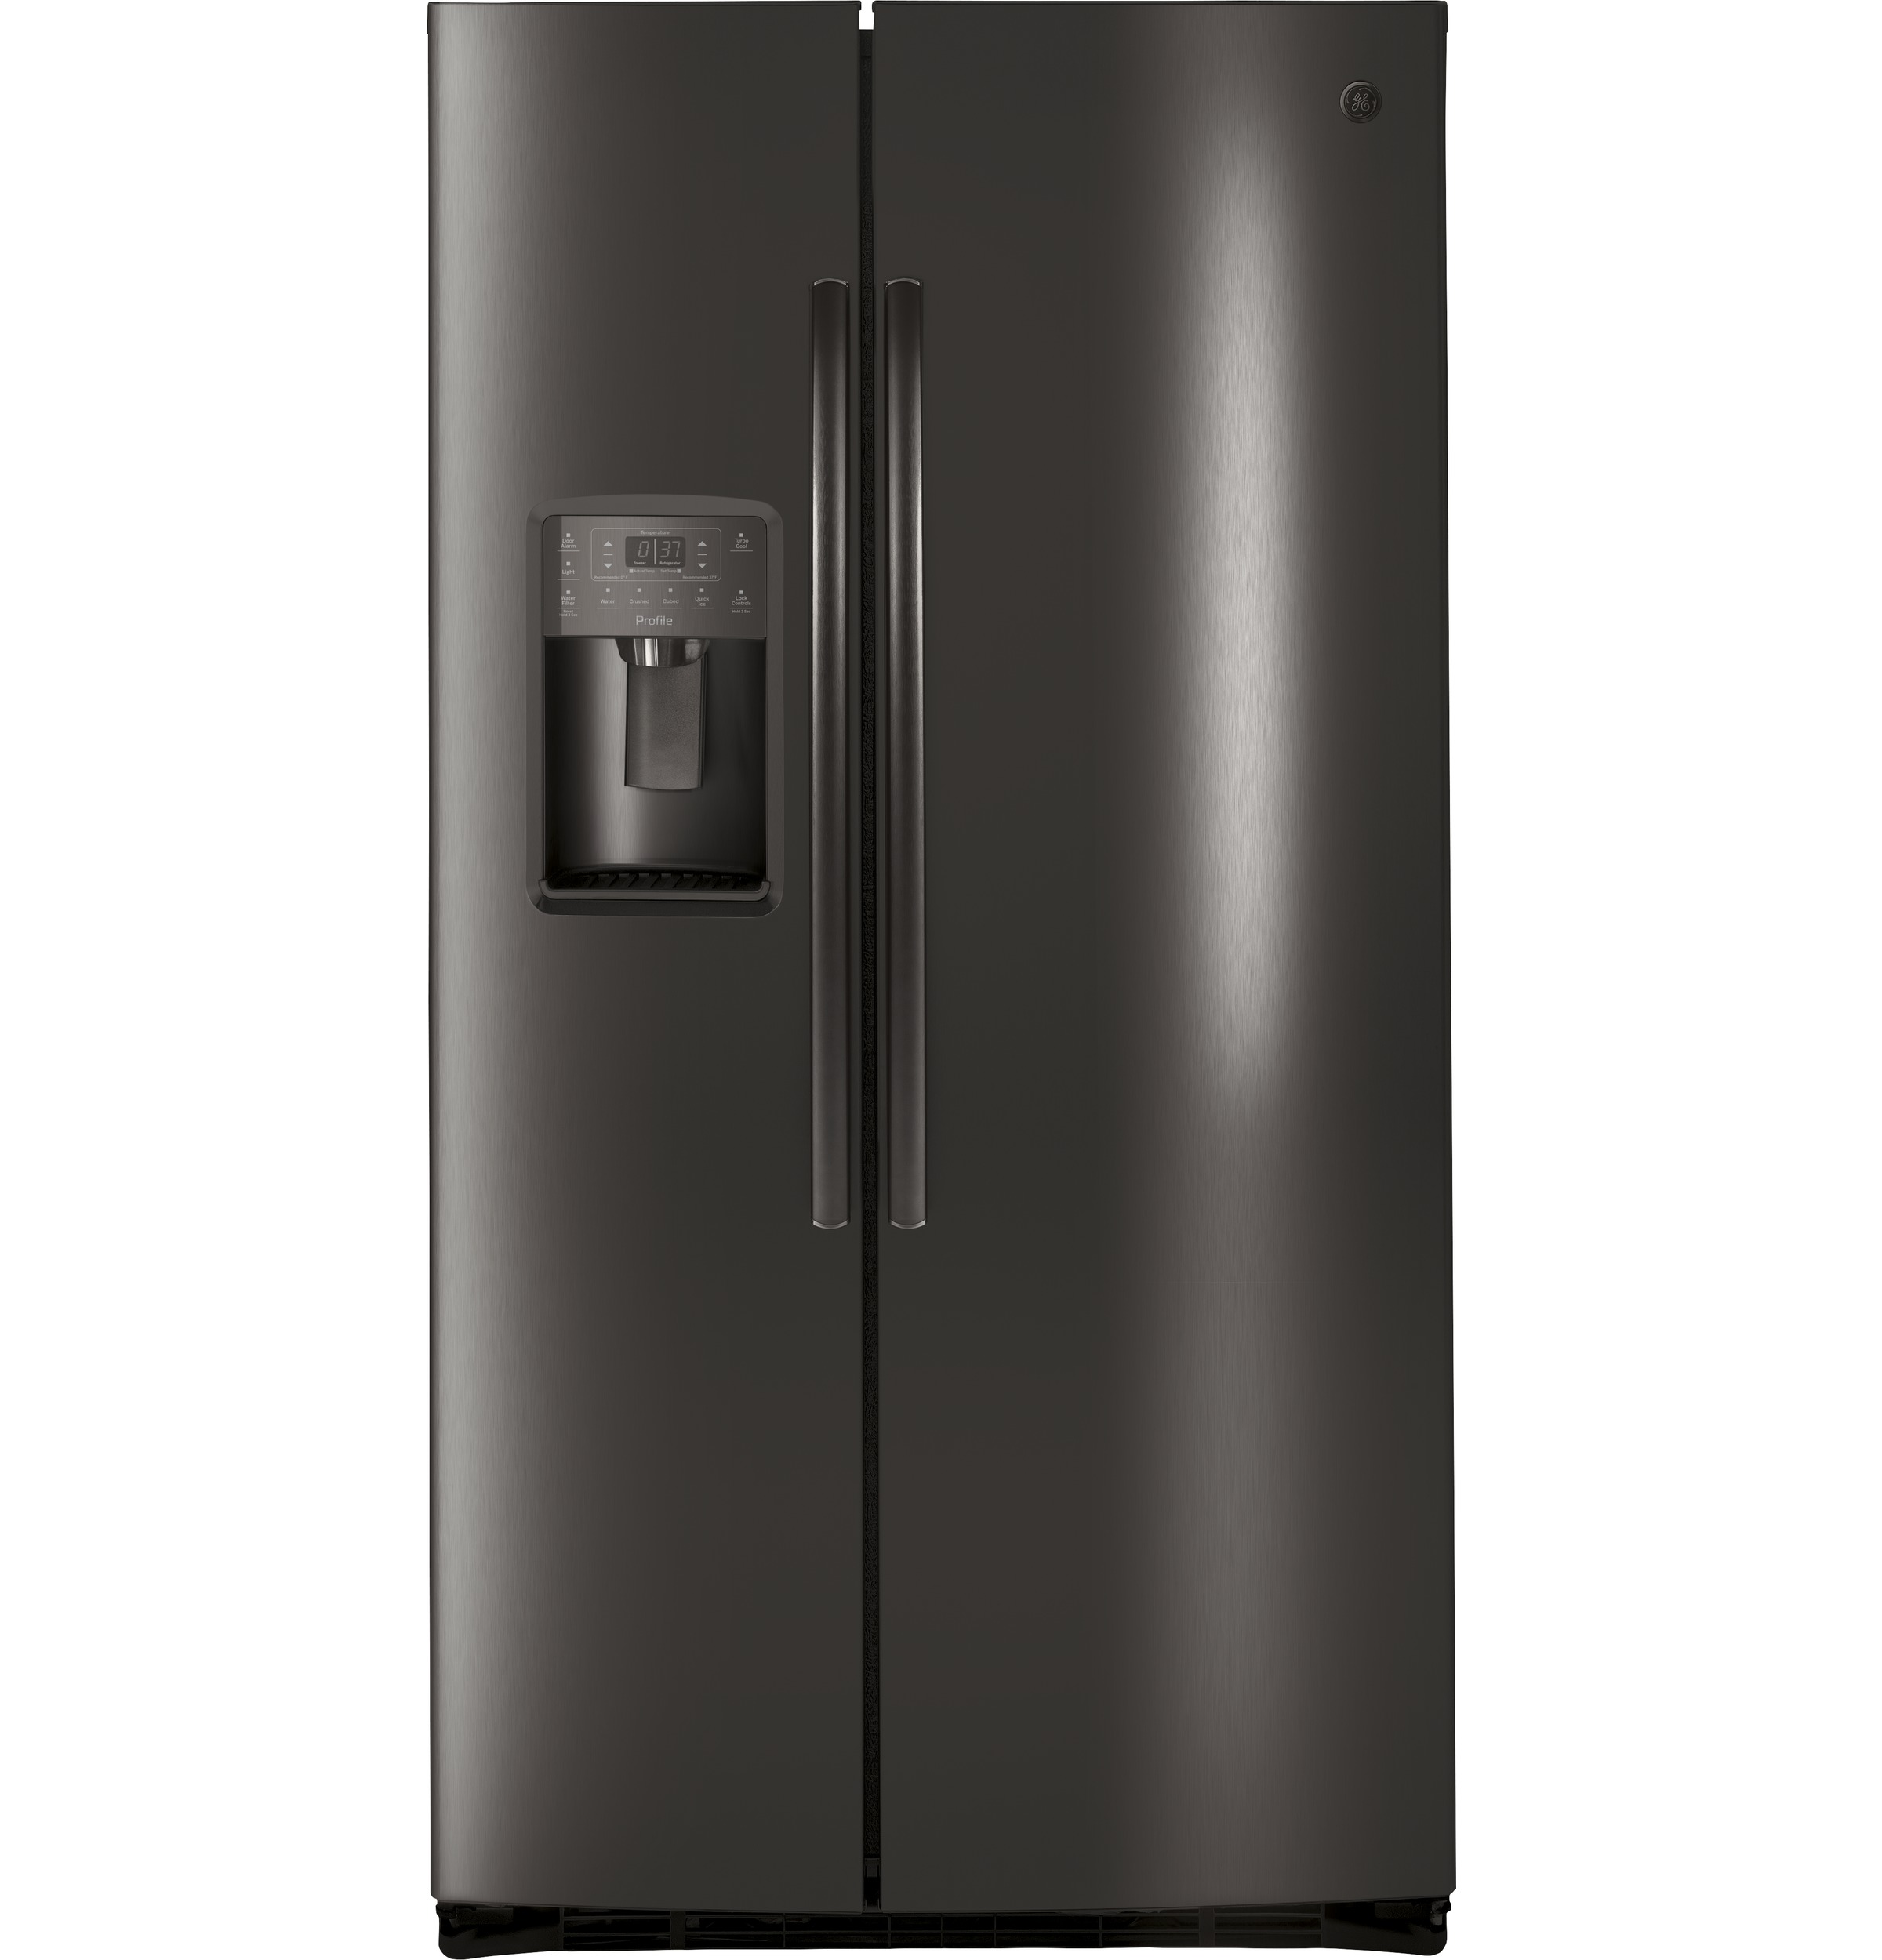 GE Profile GE Profile™ Series ENERGY STAR® 25.3 Cu. Ft. Side-by-Side Refrigerator